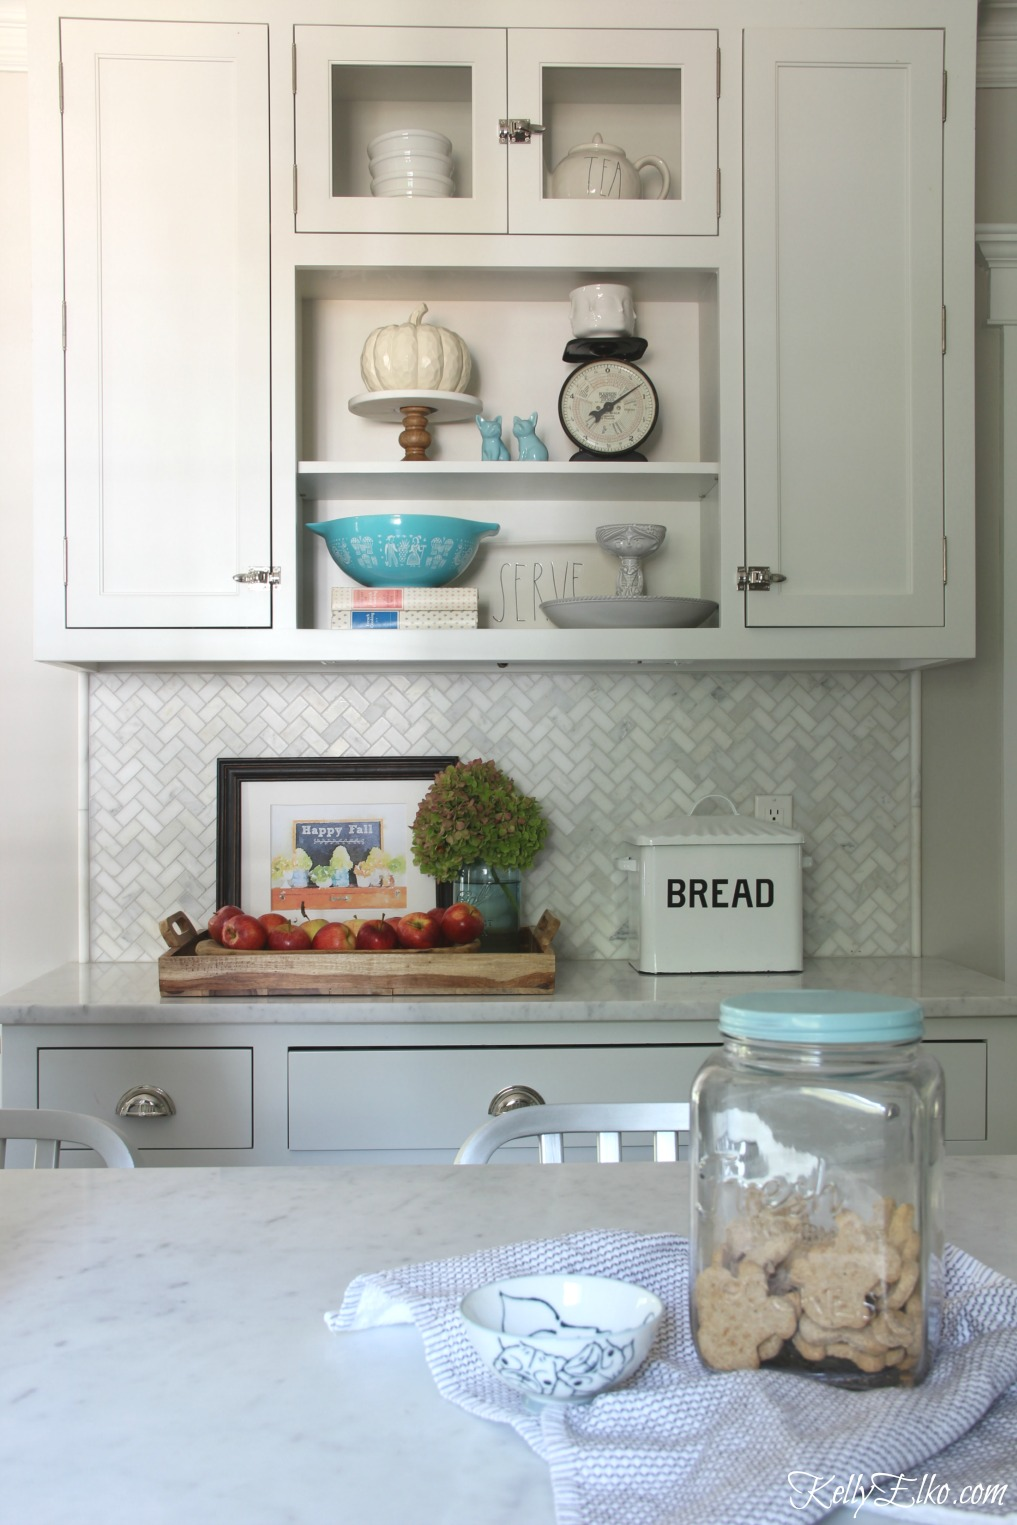 White farmhouse kitchen with open shelves kellyelko.com